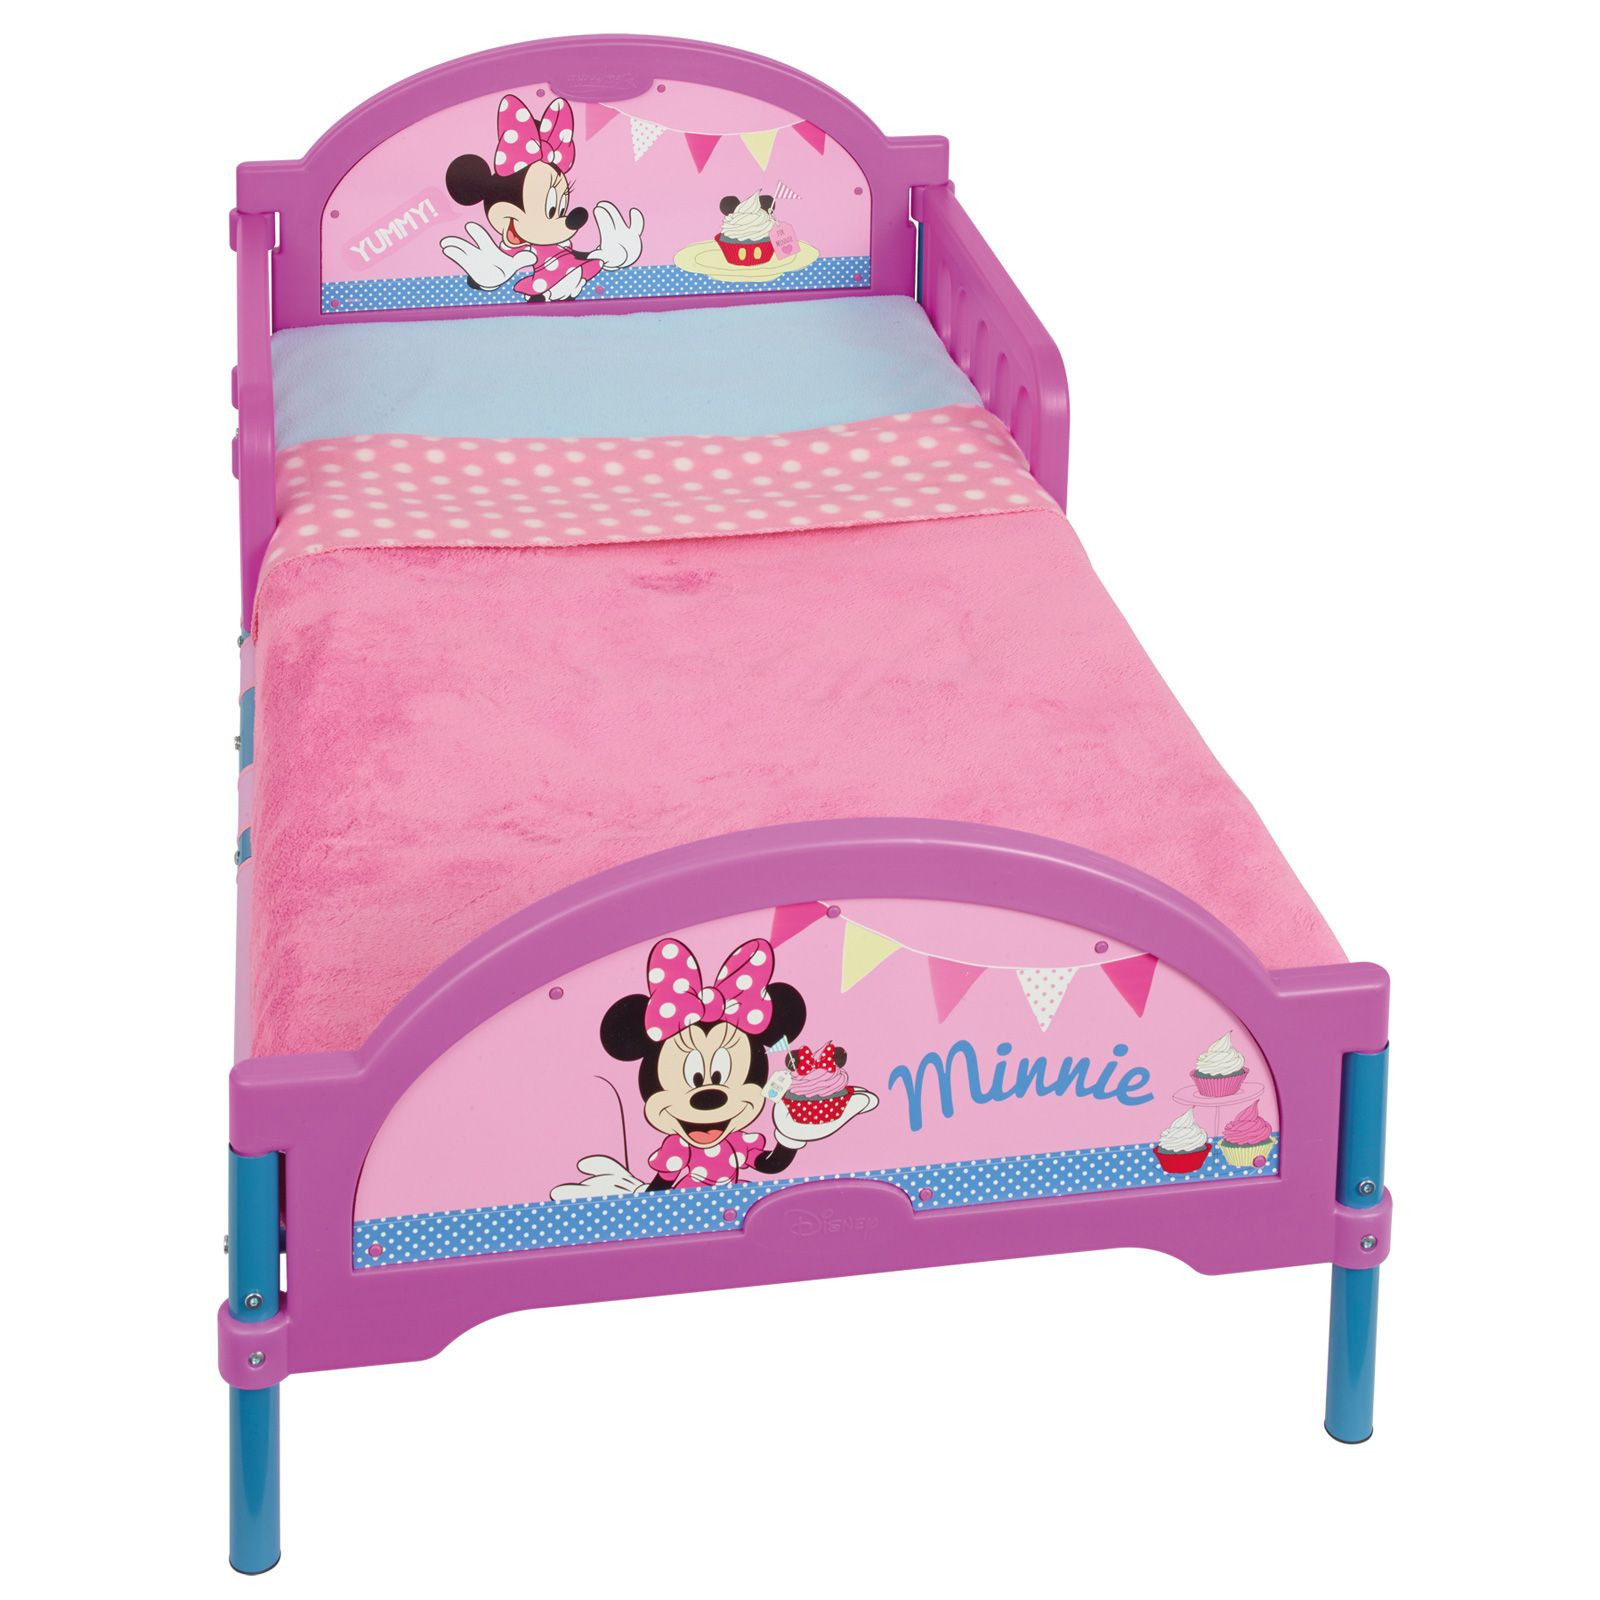 MINNIE MOUSE COSYTIME TODDLER BED NEW 100% OFFICIAL | eBay